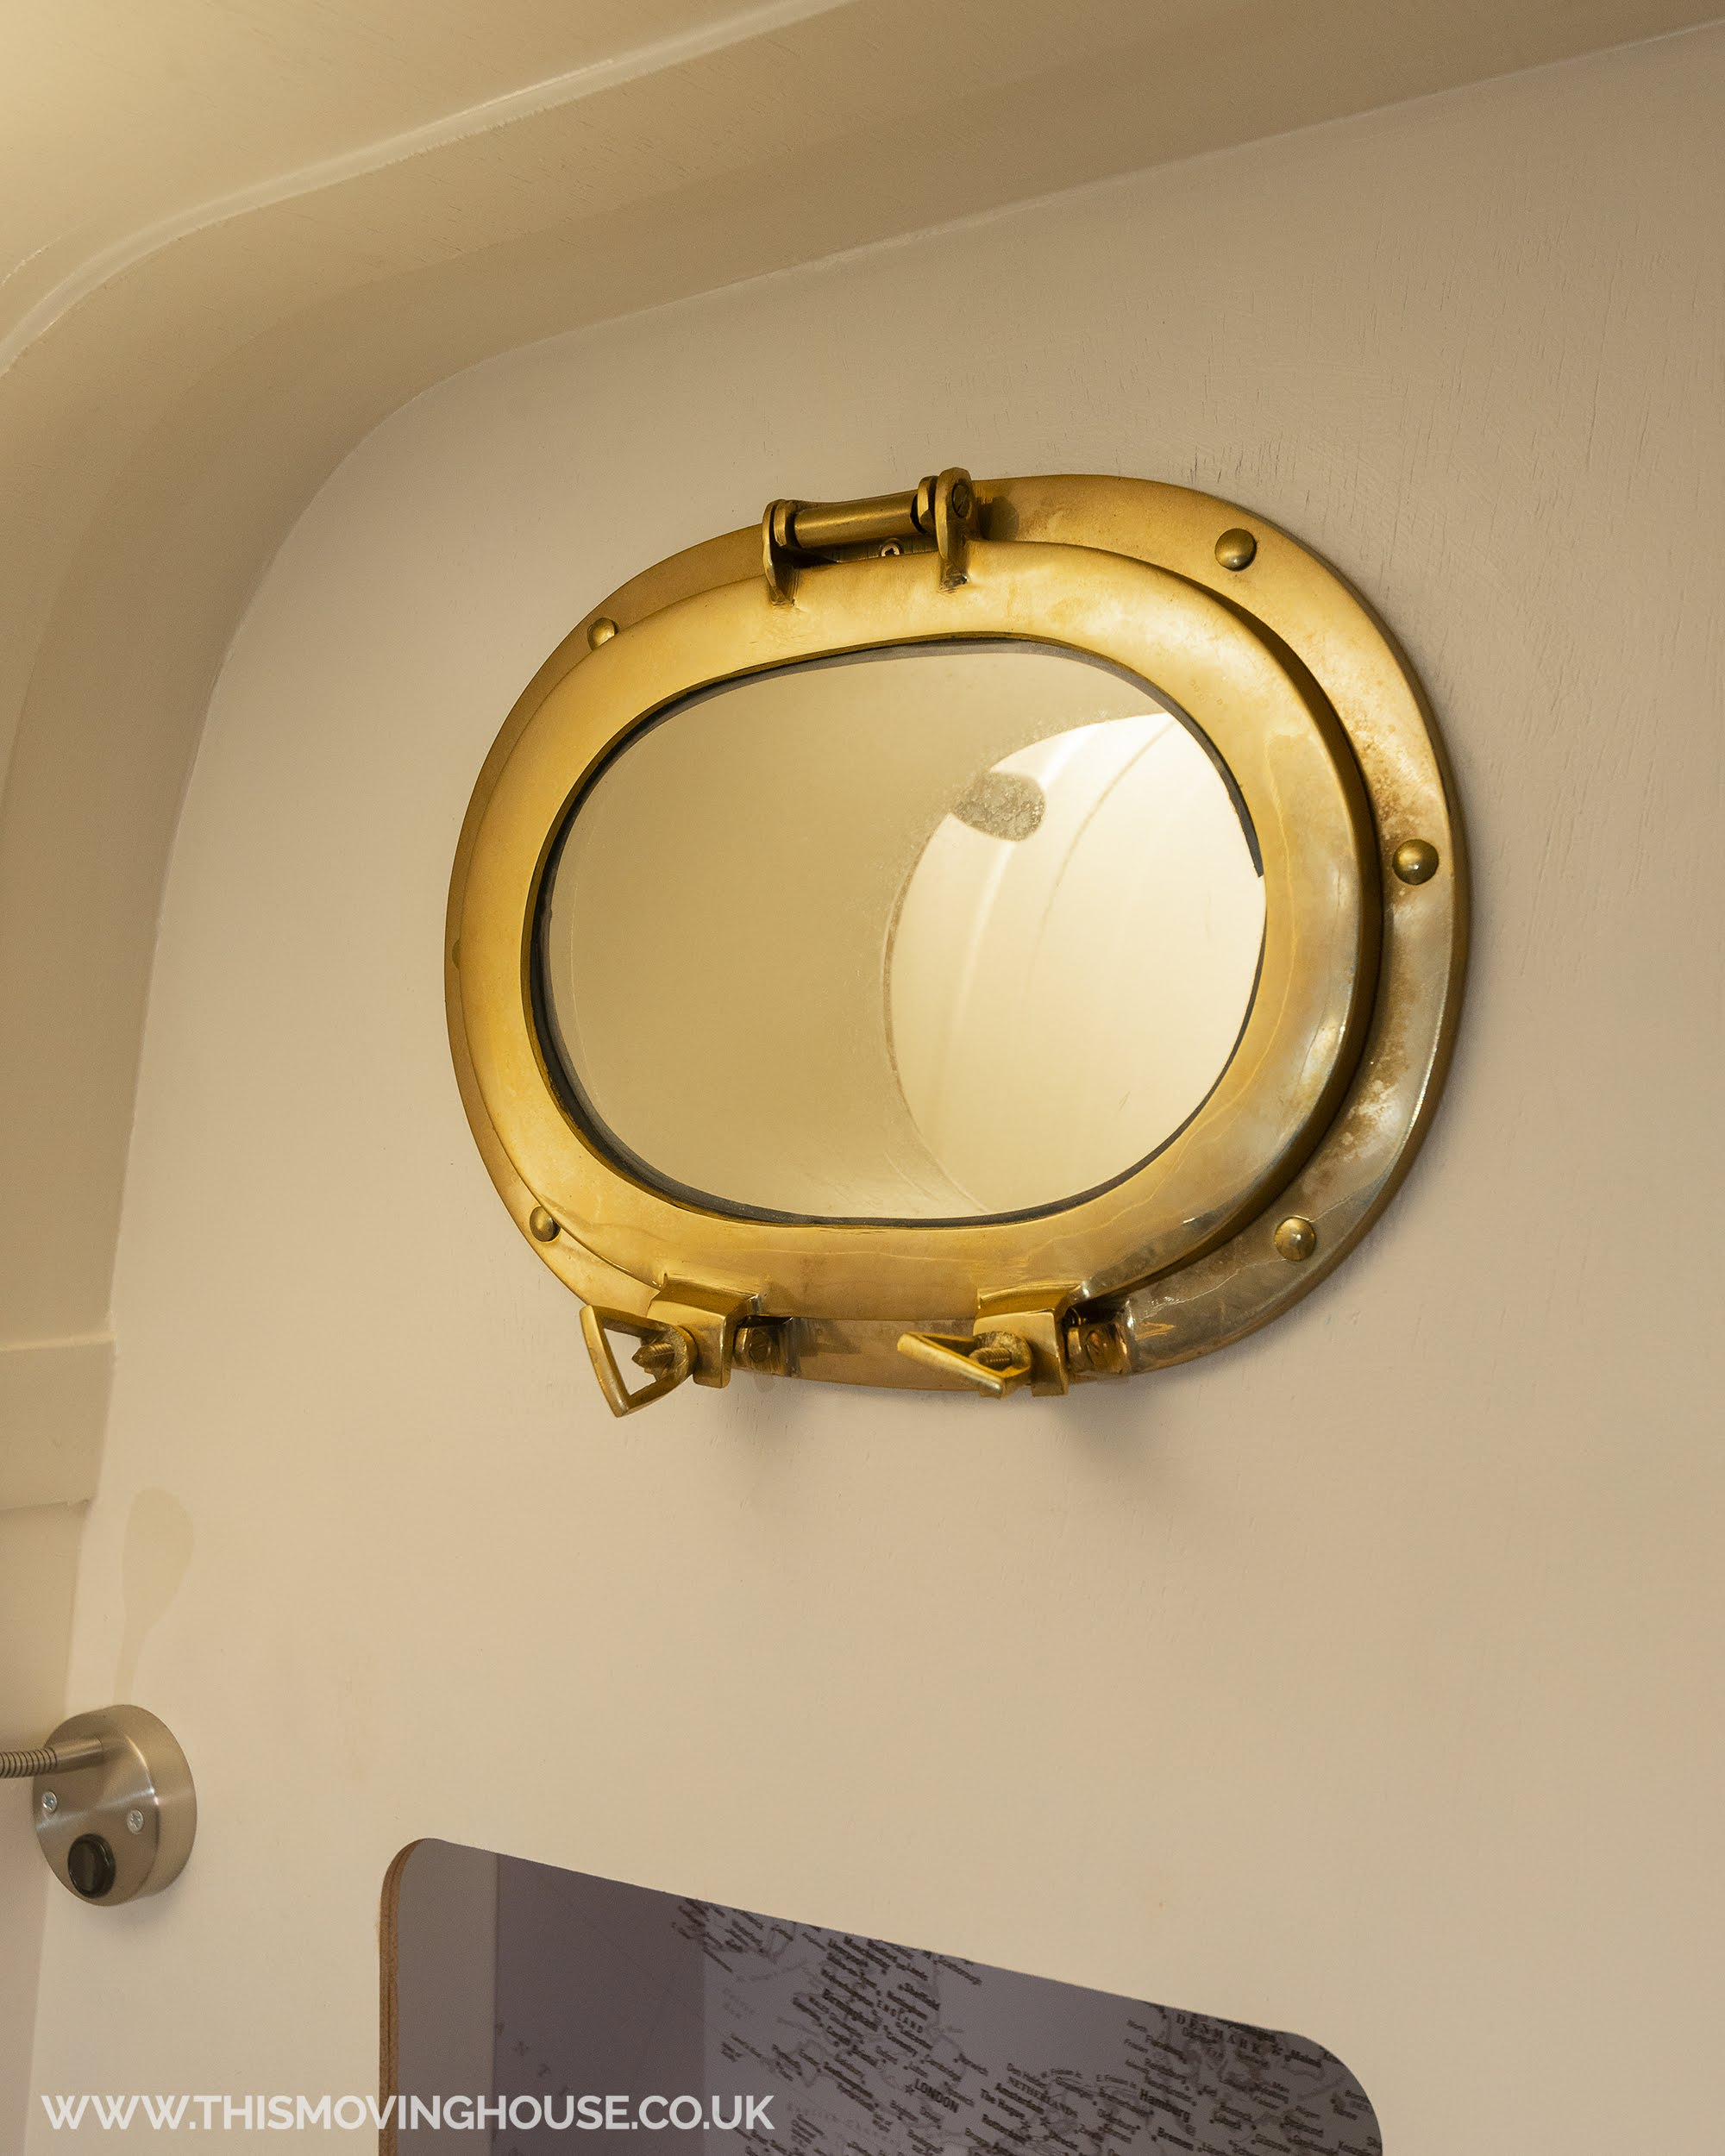 brass oval porthole in a family camper van